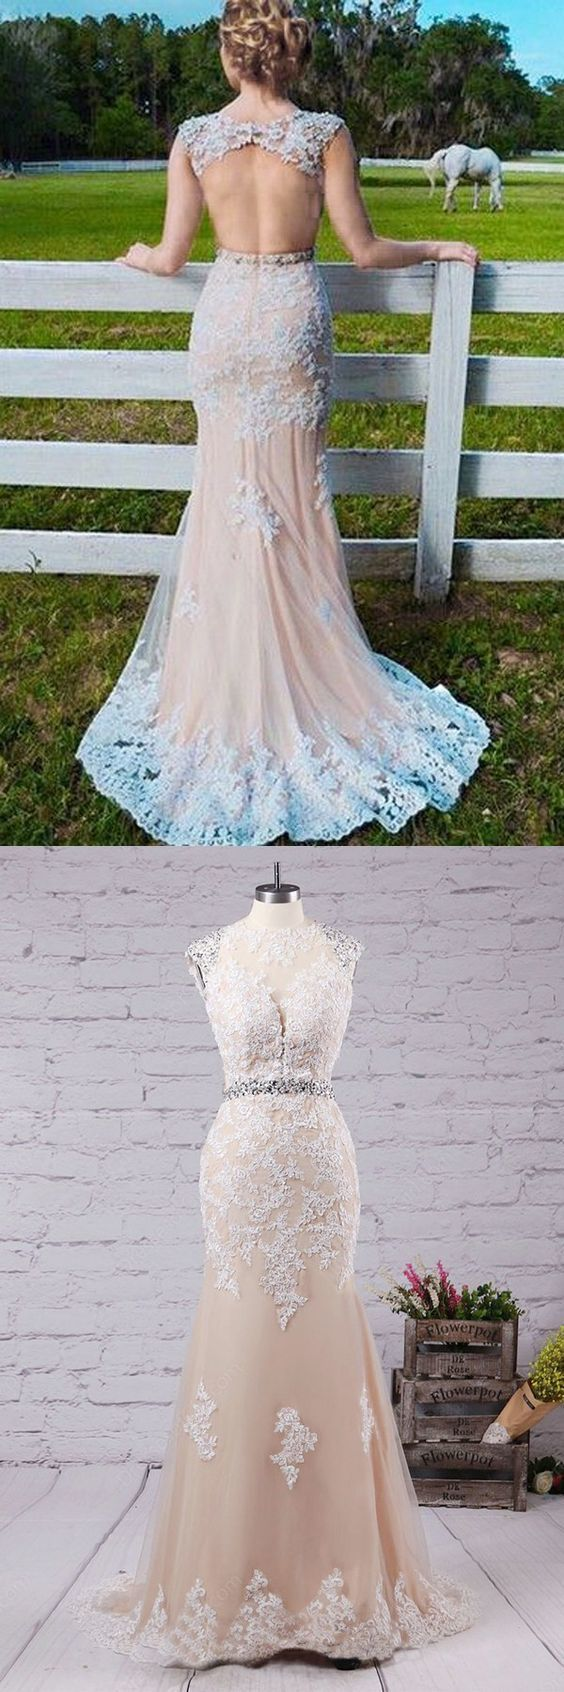 Mermaid Jewel Sweep Train Open Back Champagne Tulle Prom Dress with Applqiues